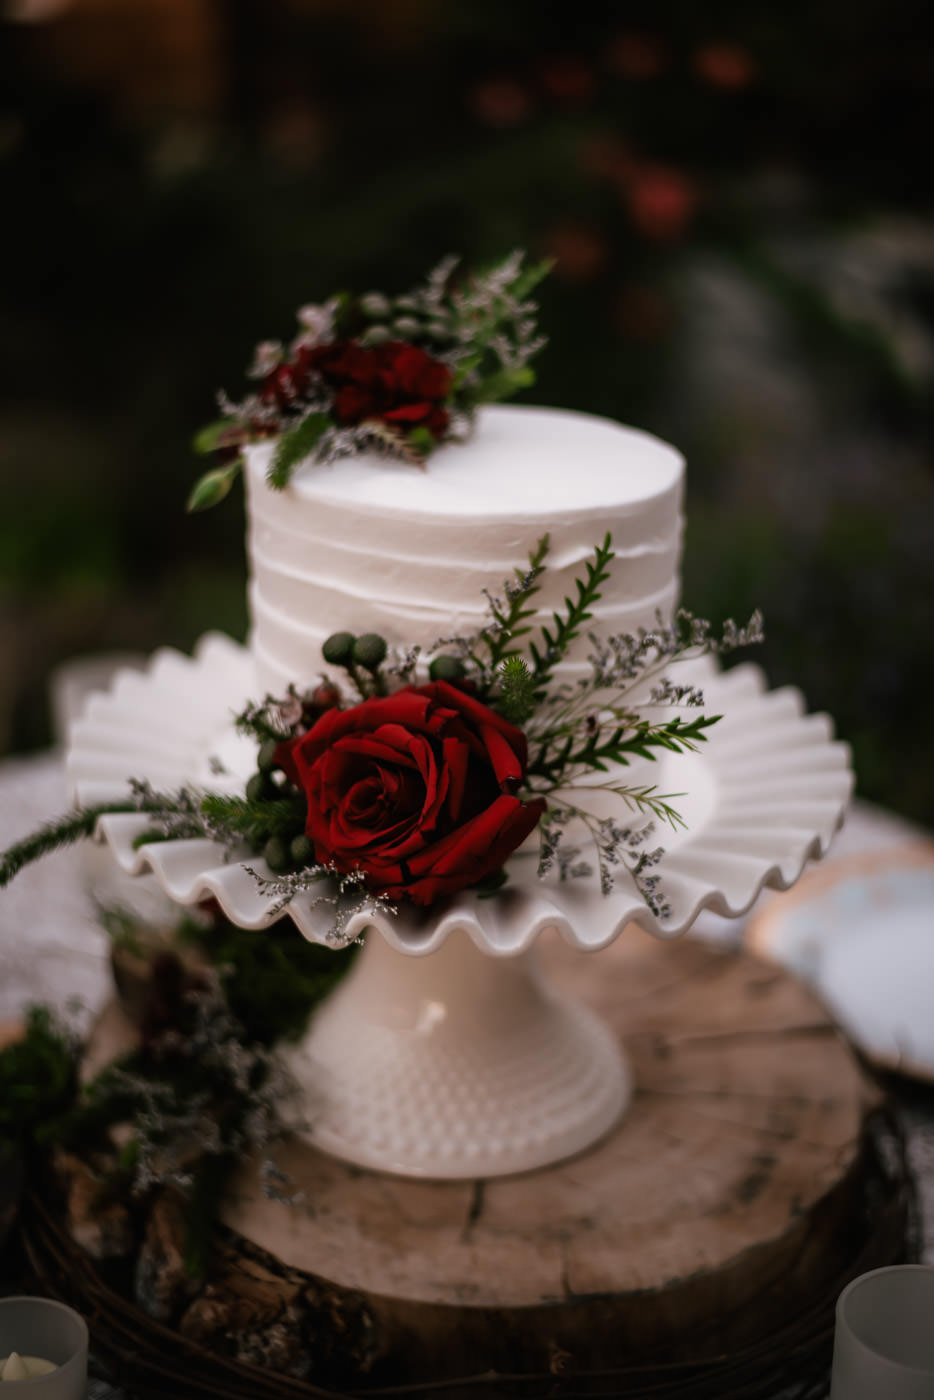 Topping your wedding cake with flower details is an easy way to class up your reception.